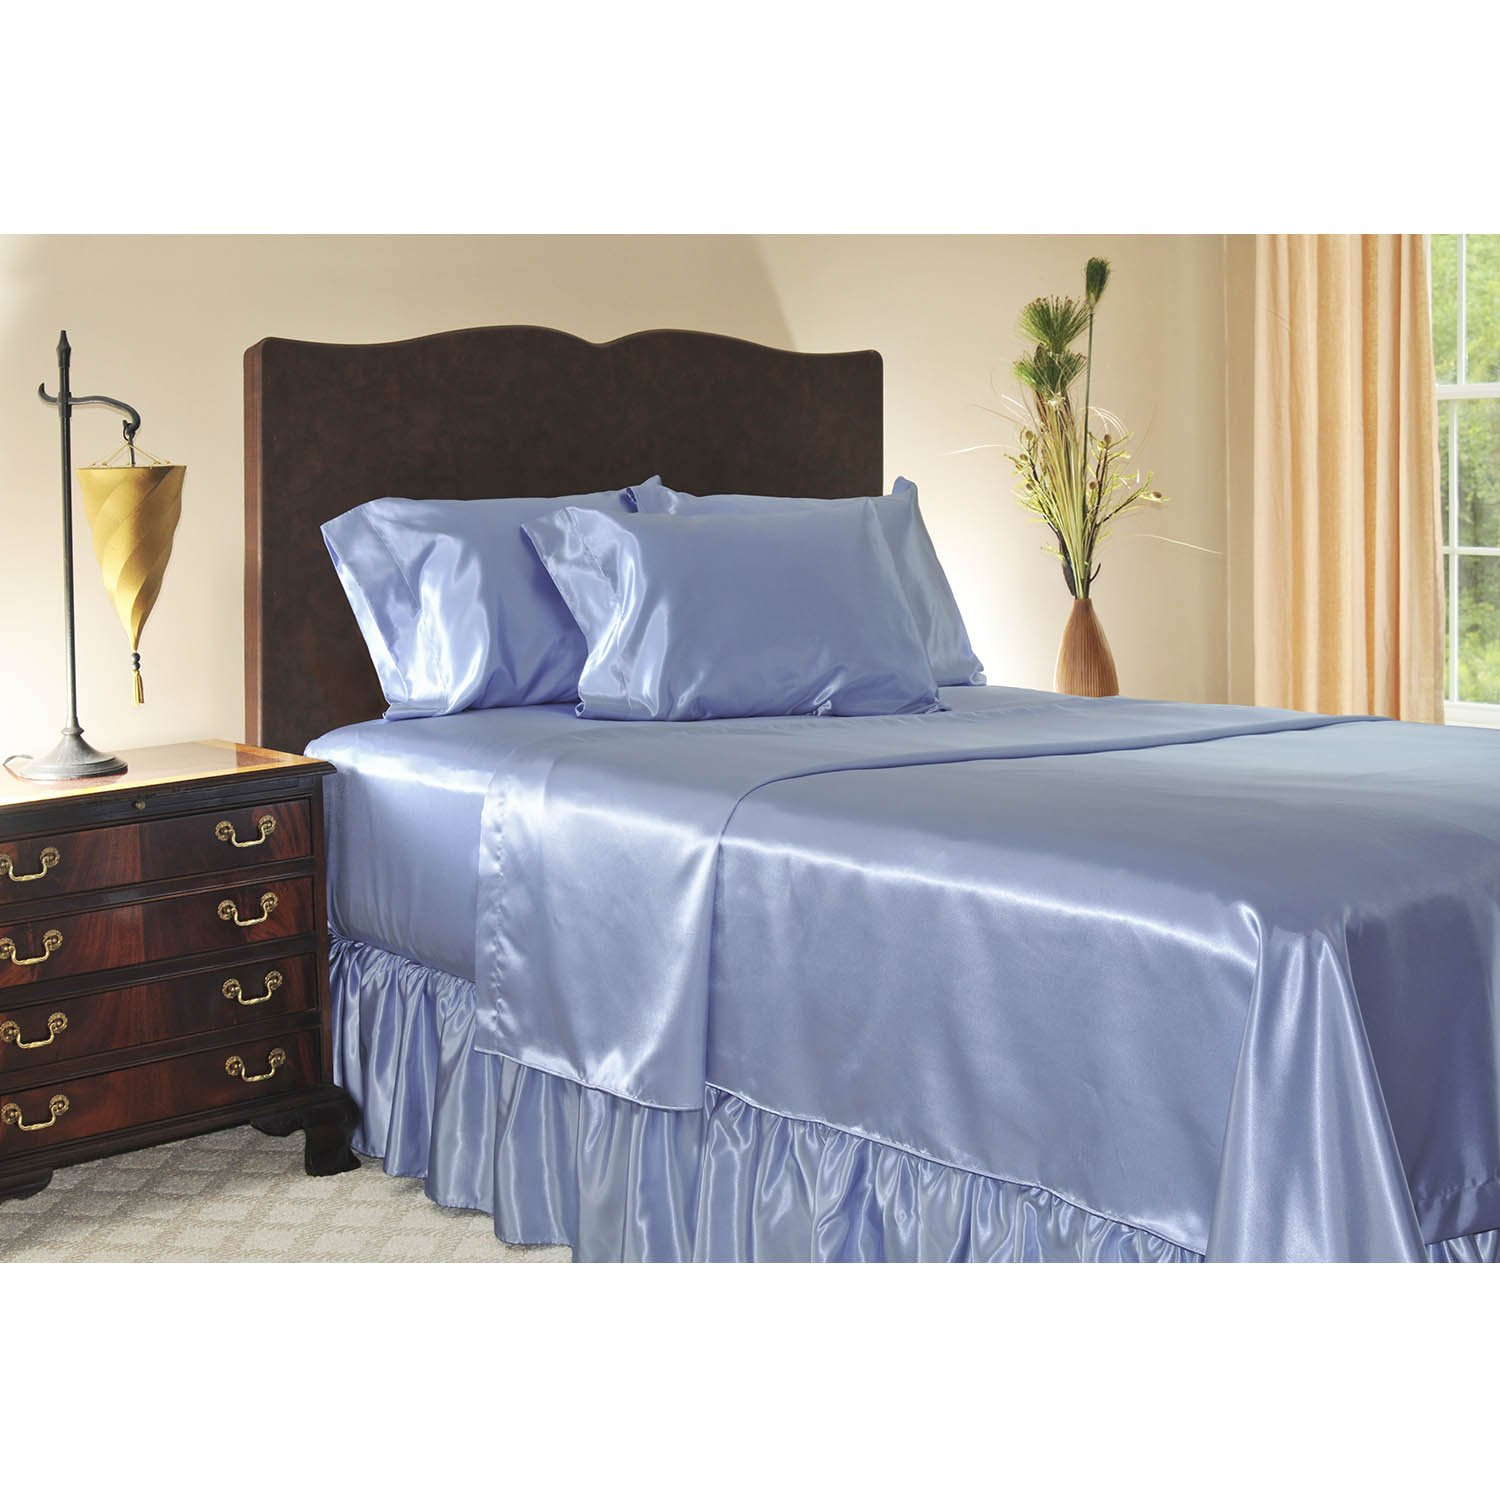 sweet dream Luxury Queen Size Satin Fitted Sheet - Jewel Blue